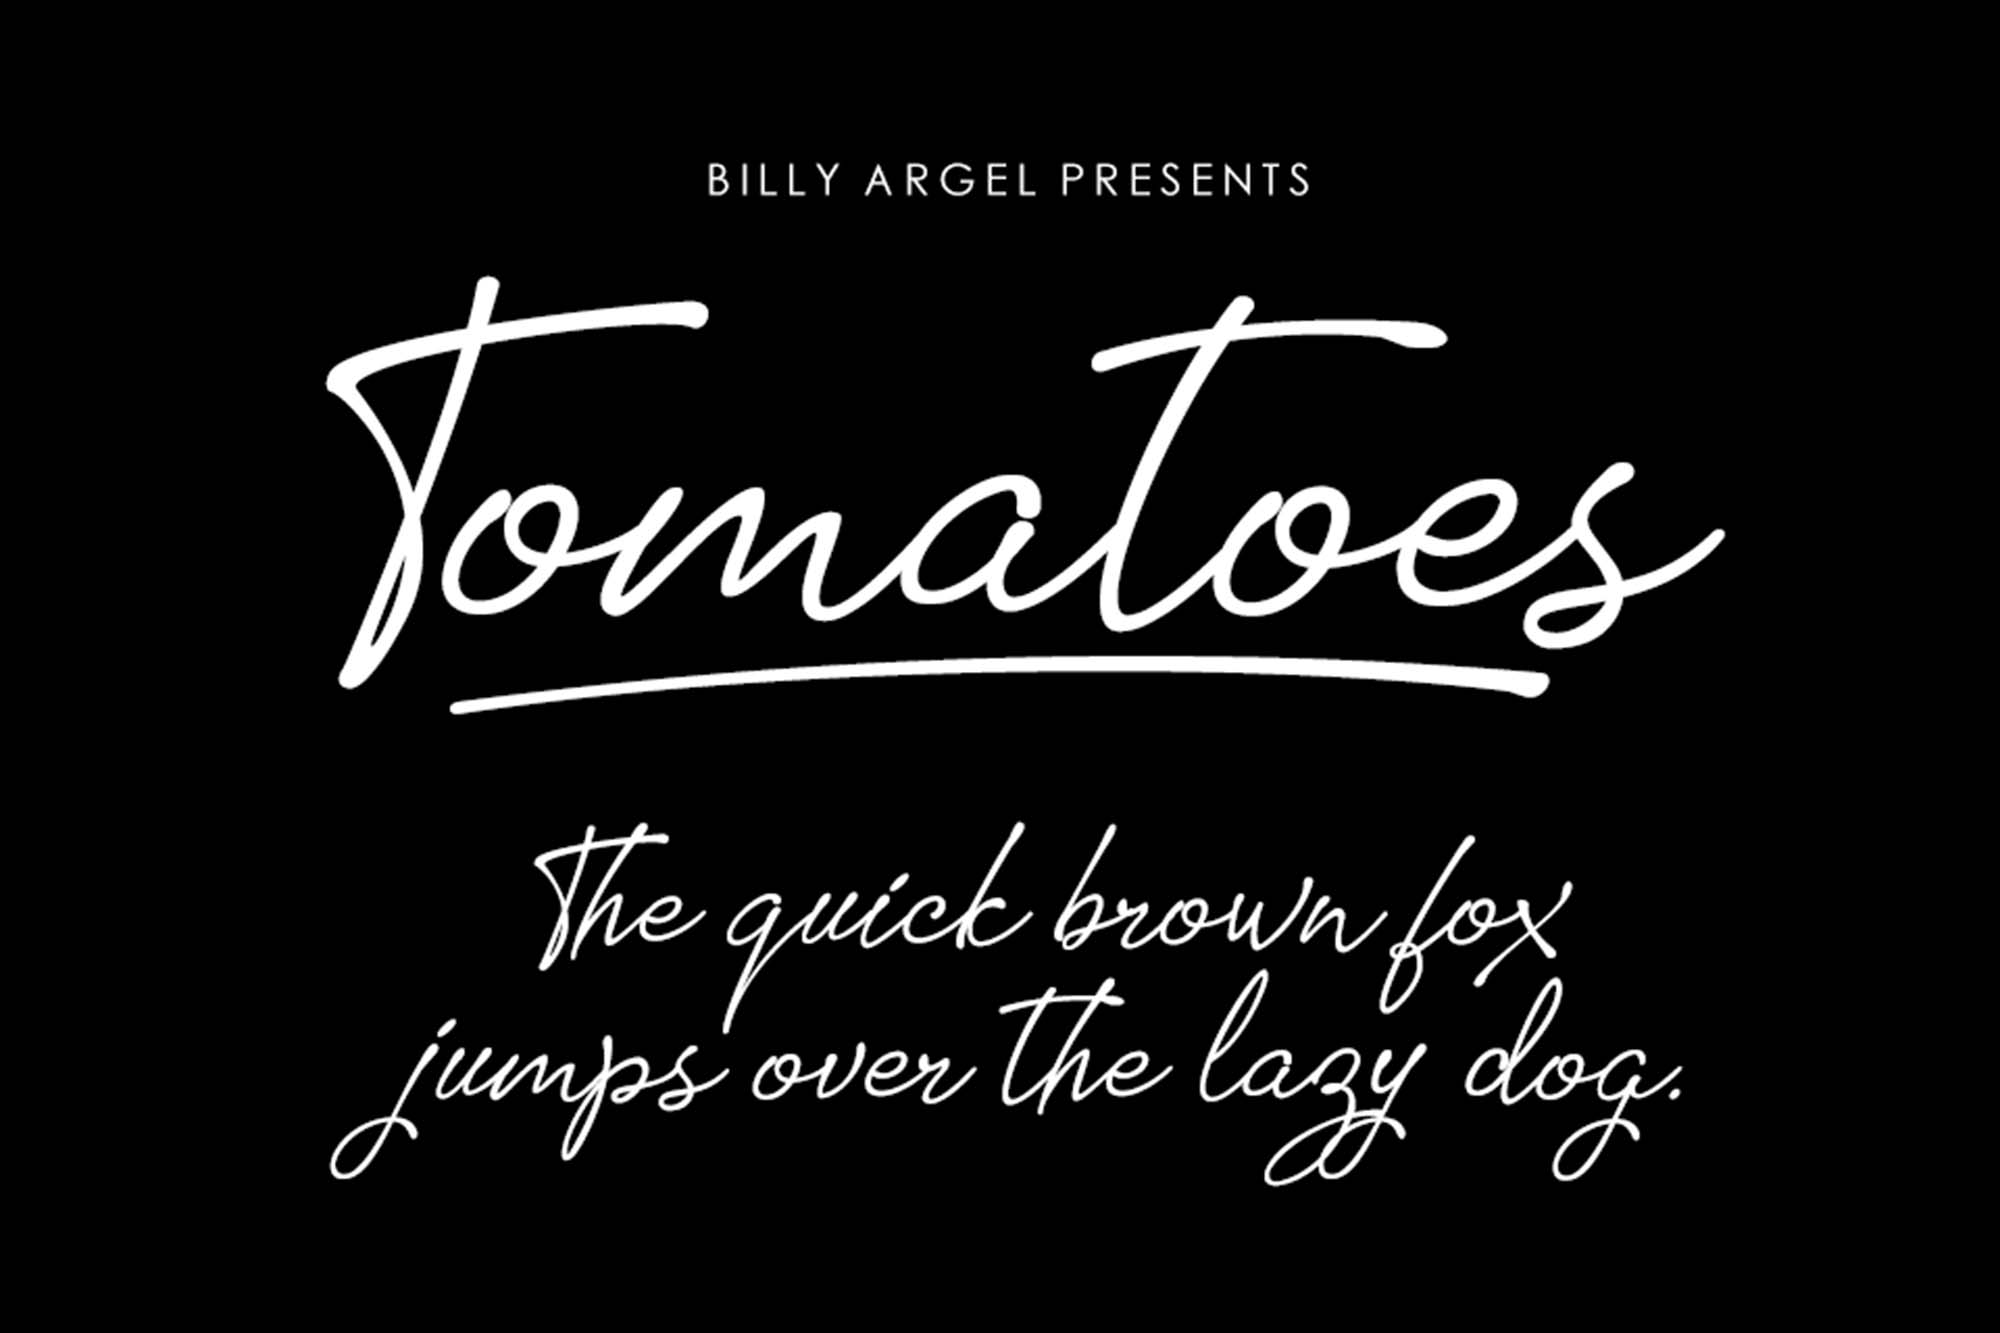 Tomatoes free font they find application in a wide range of design projects ranging from wedding invitation cards to branding and even greeting m4hsunfo